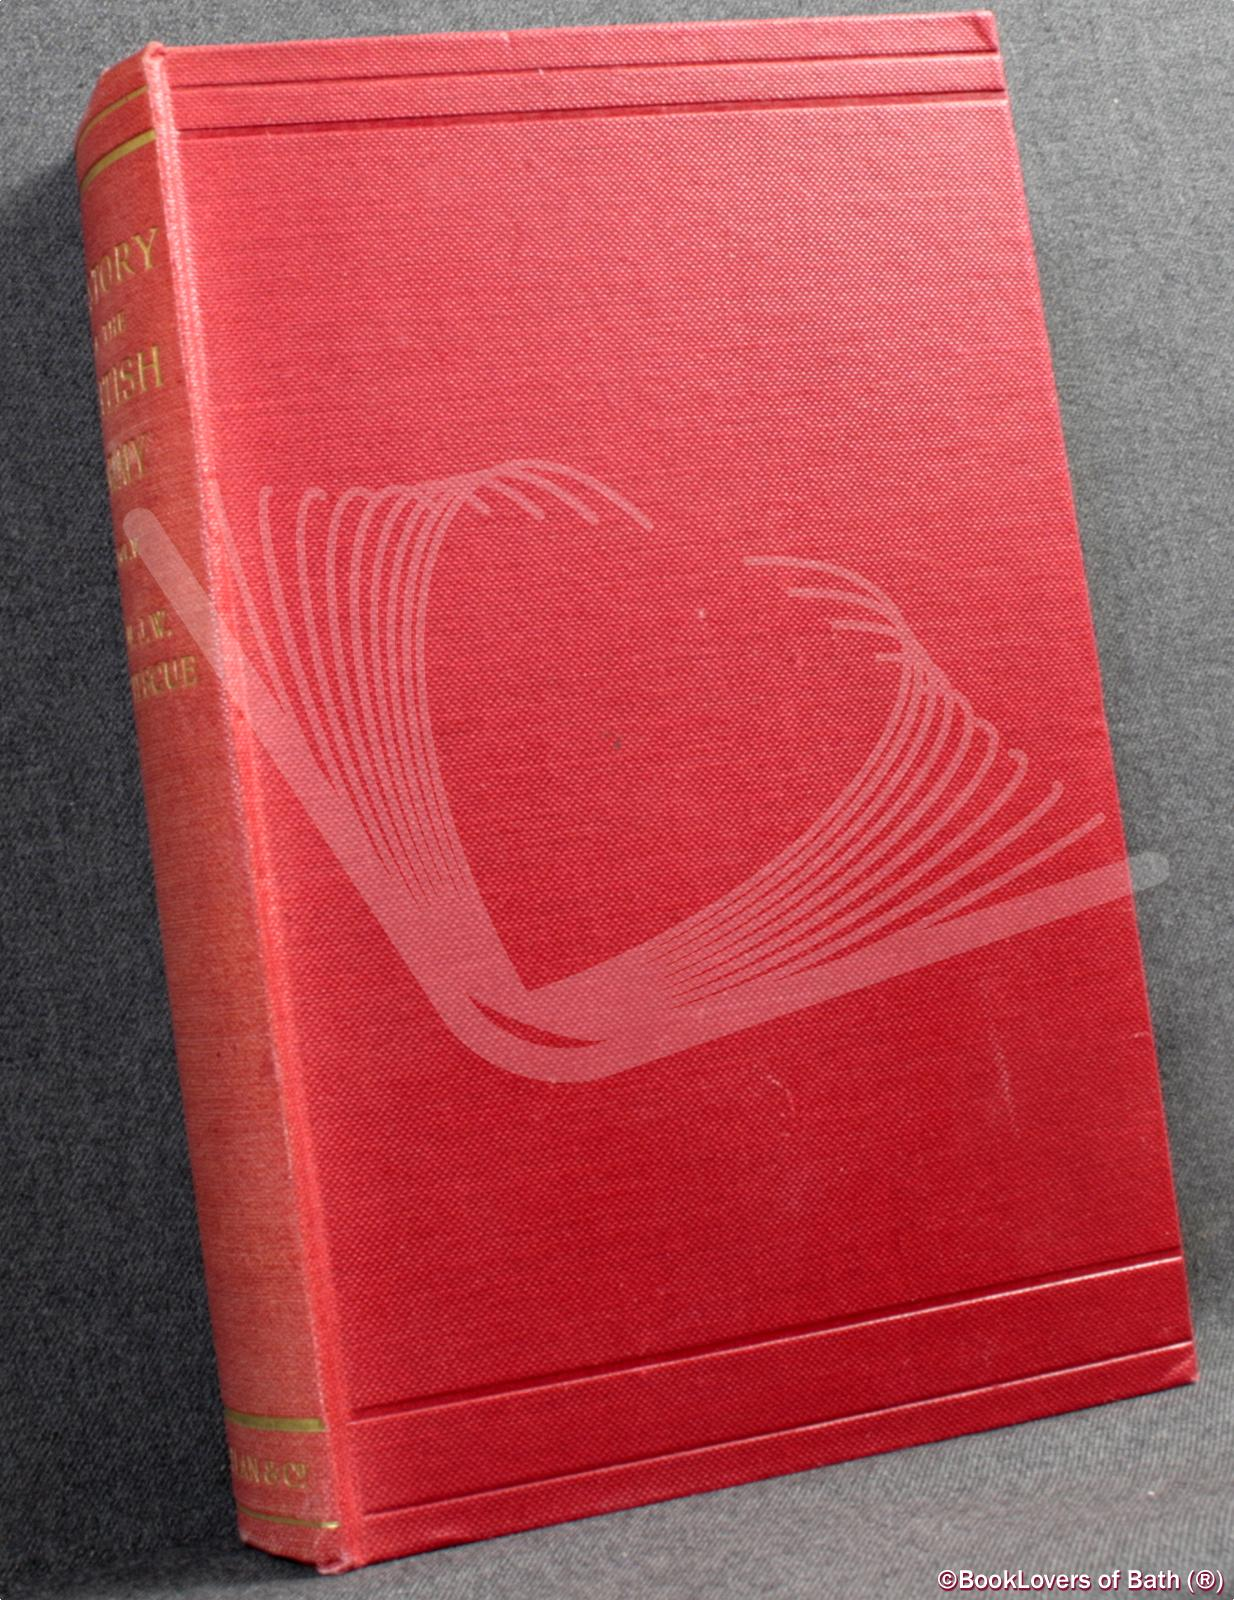 History-of-the-British-Army-Vol-V-Fortescue-1910-HB